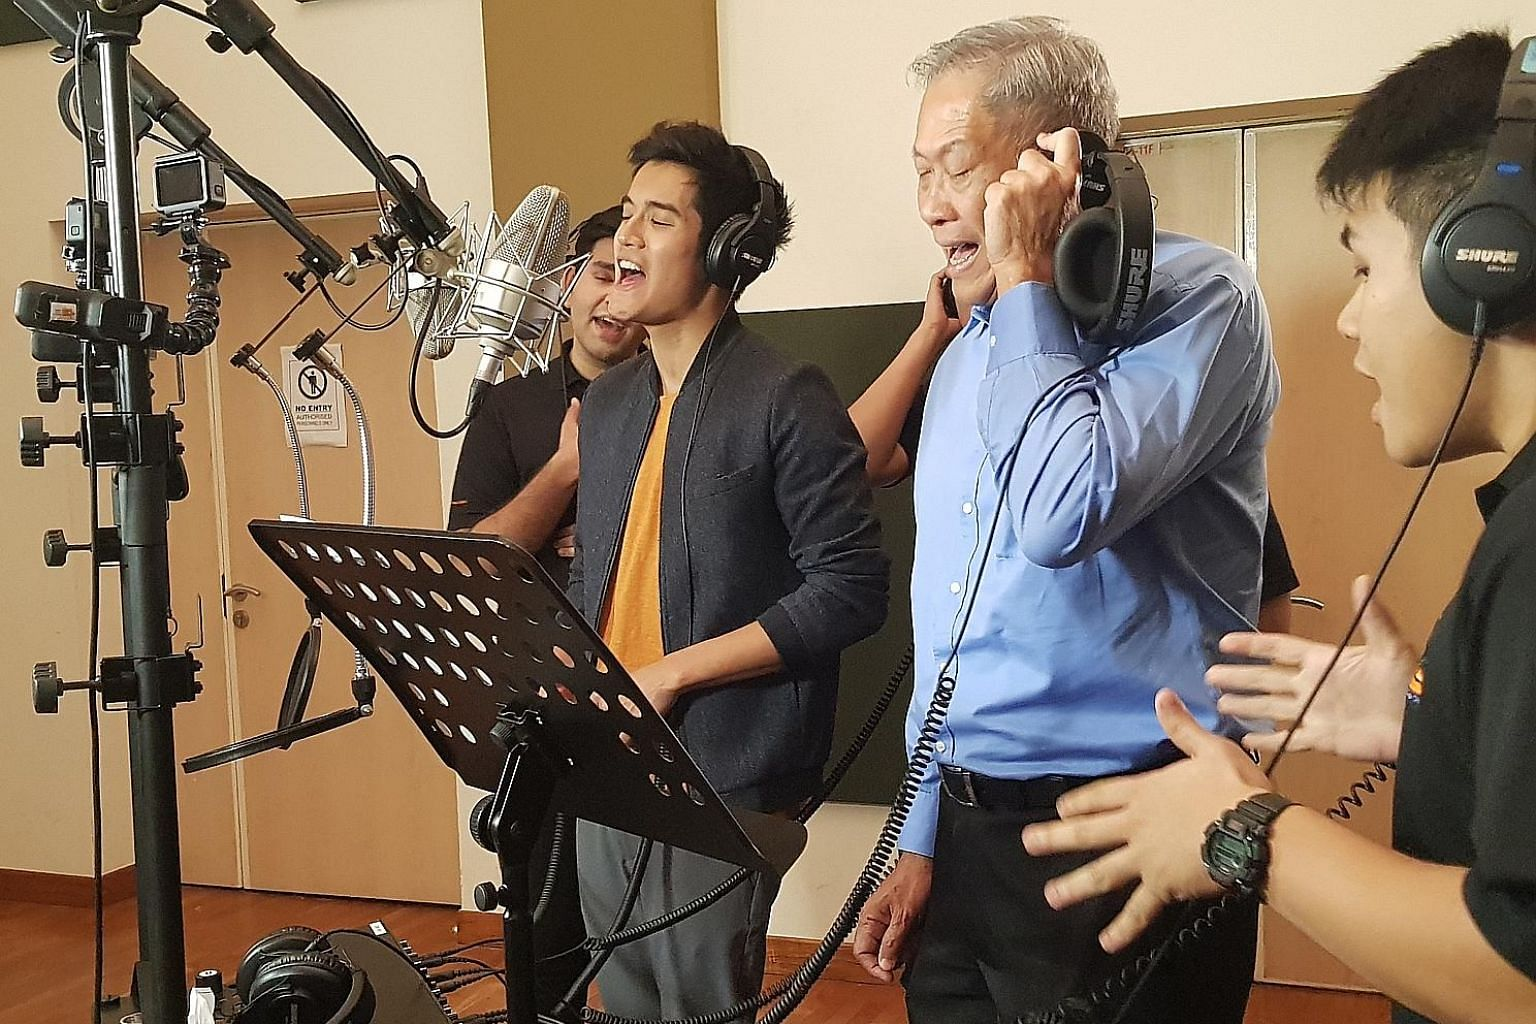 Singer Nathan Hartono, Defence Minister Ng Eng Hen and vocalist group Camokakis (in black) at a recording session last Tuesday for We Are The People, one of the tracks in the NS50 album to be released during NS50 Week.